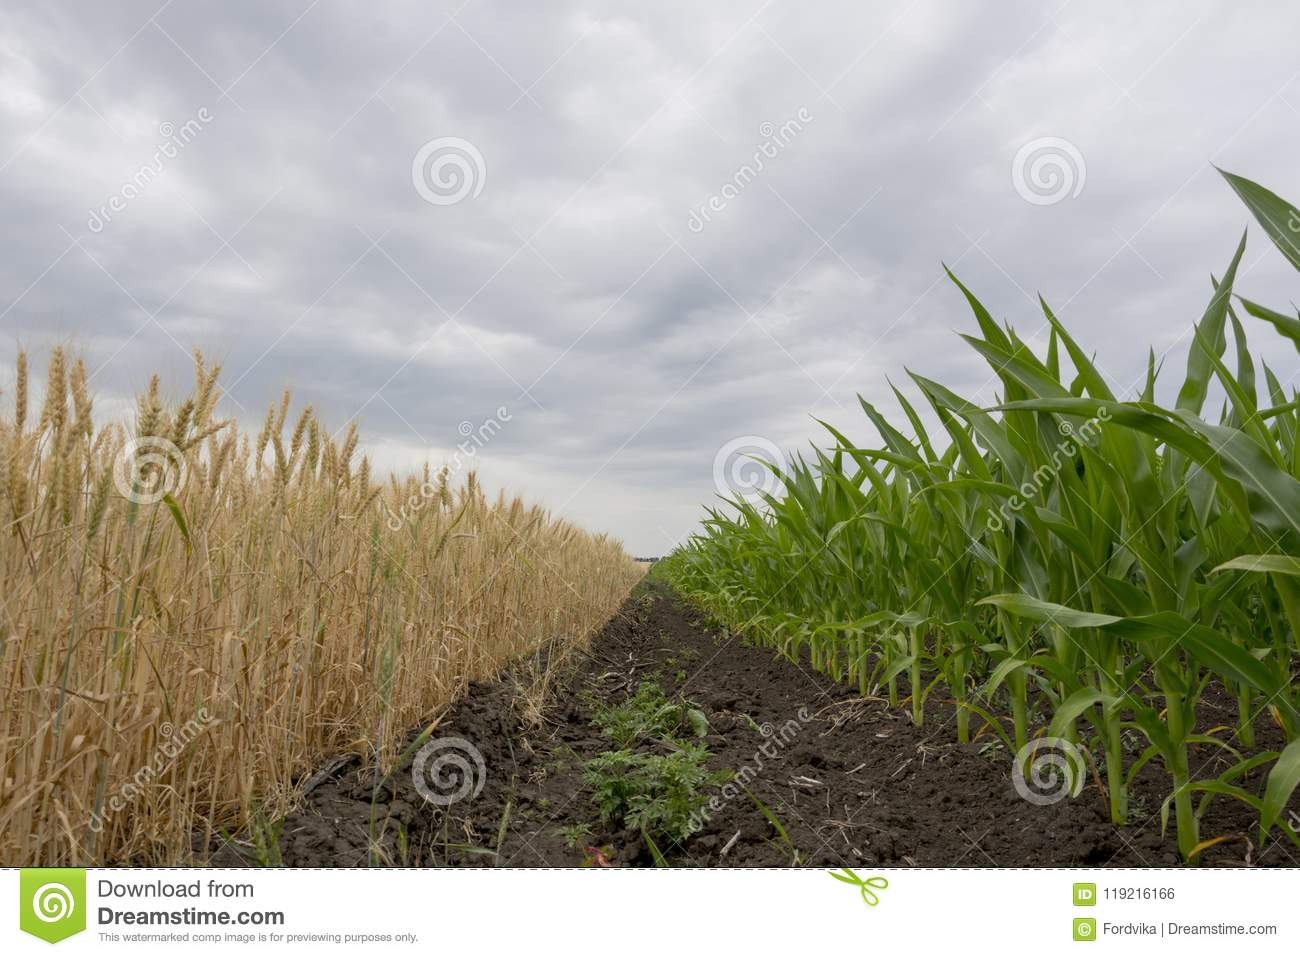 The boundary fields with maturing grain crop, rye, wheat or barley, the fields green with growing corn.